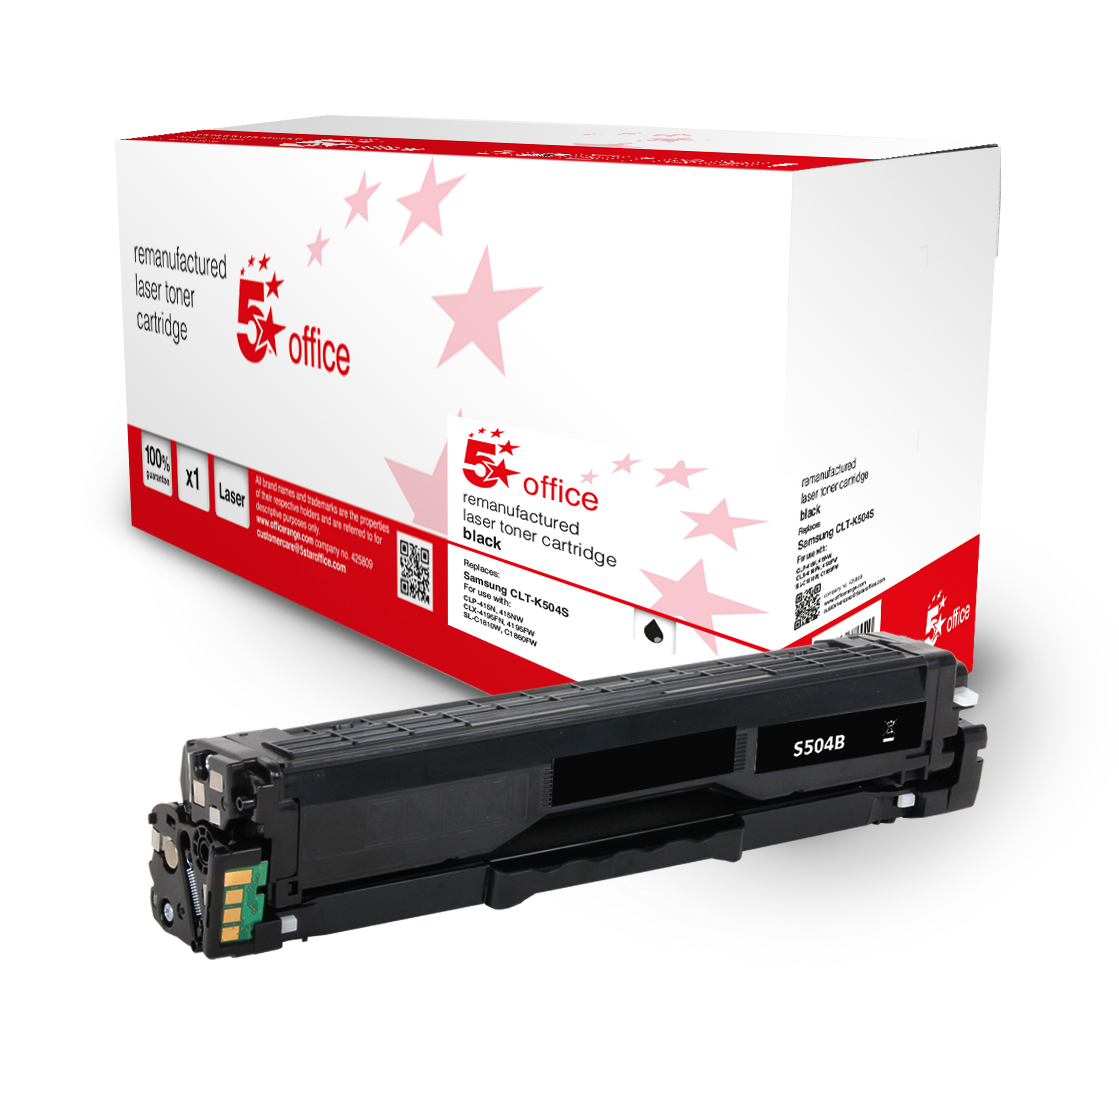 5 Star Office Remanufactured Toner Cartridge Page Life Black 2500pp Samsung SU158A Alternative